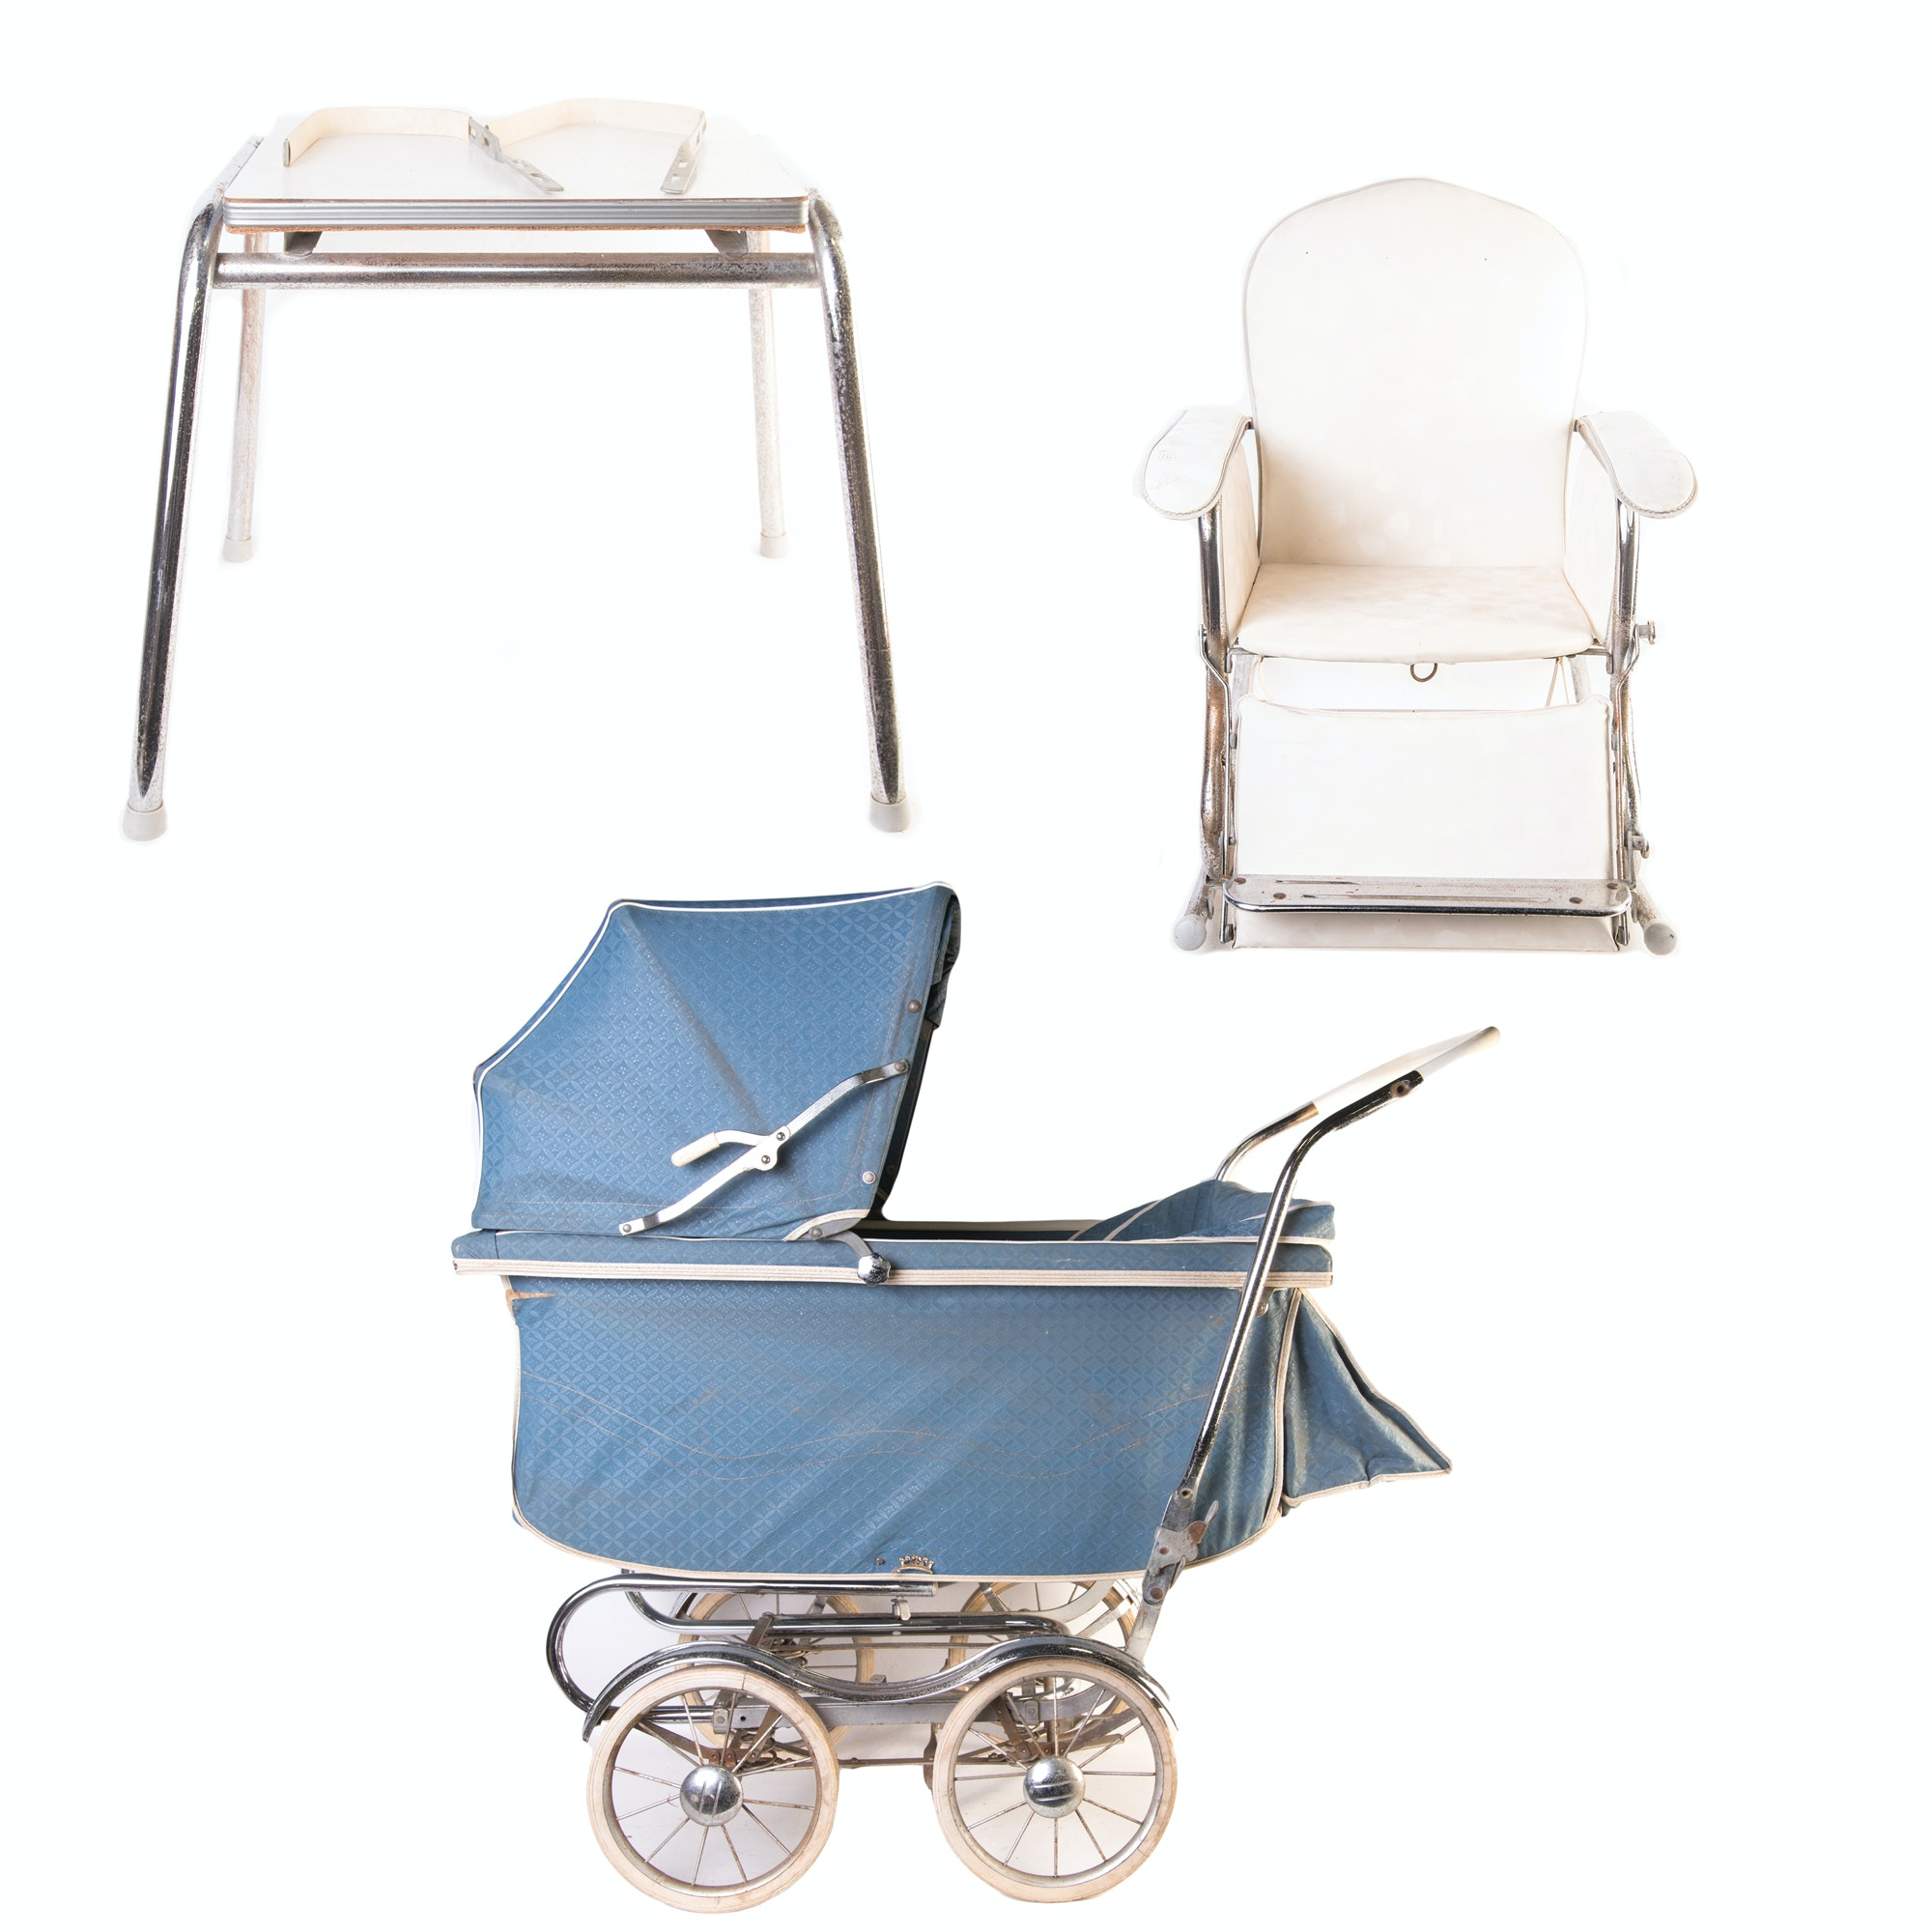 Vintage Decorative Stroll O Chair Baby Carriage, Rocker, Table Set